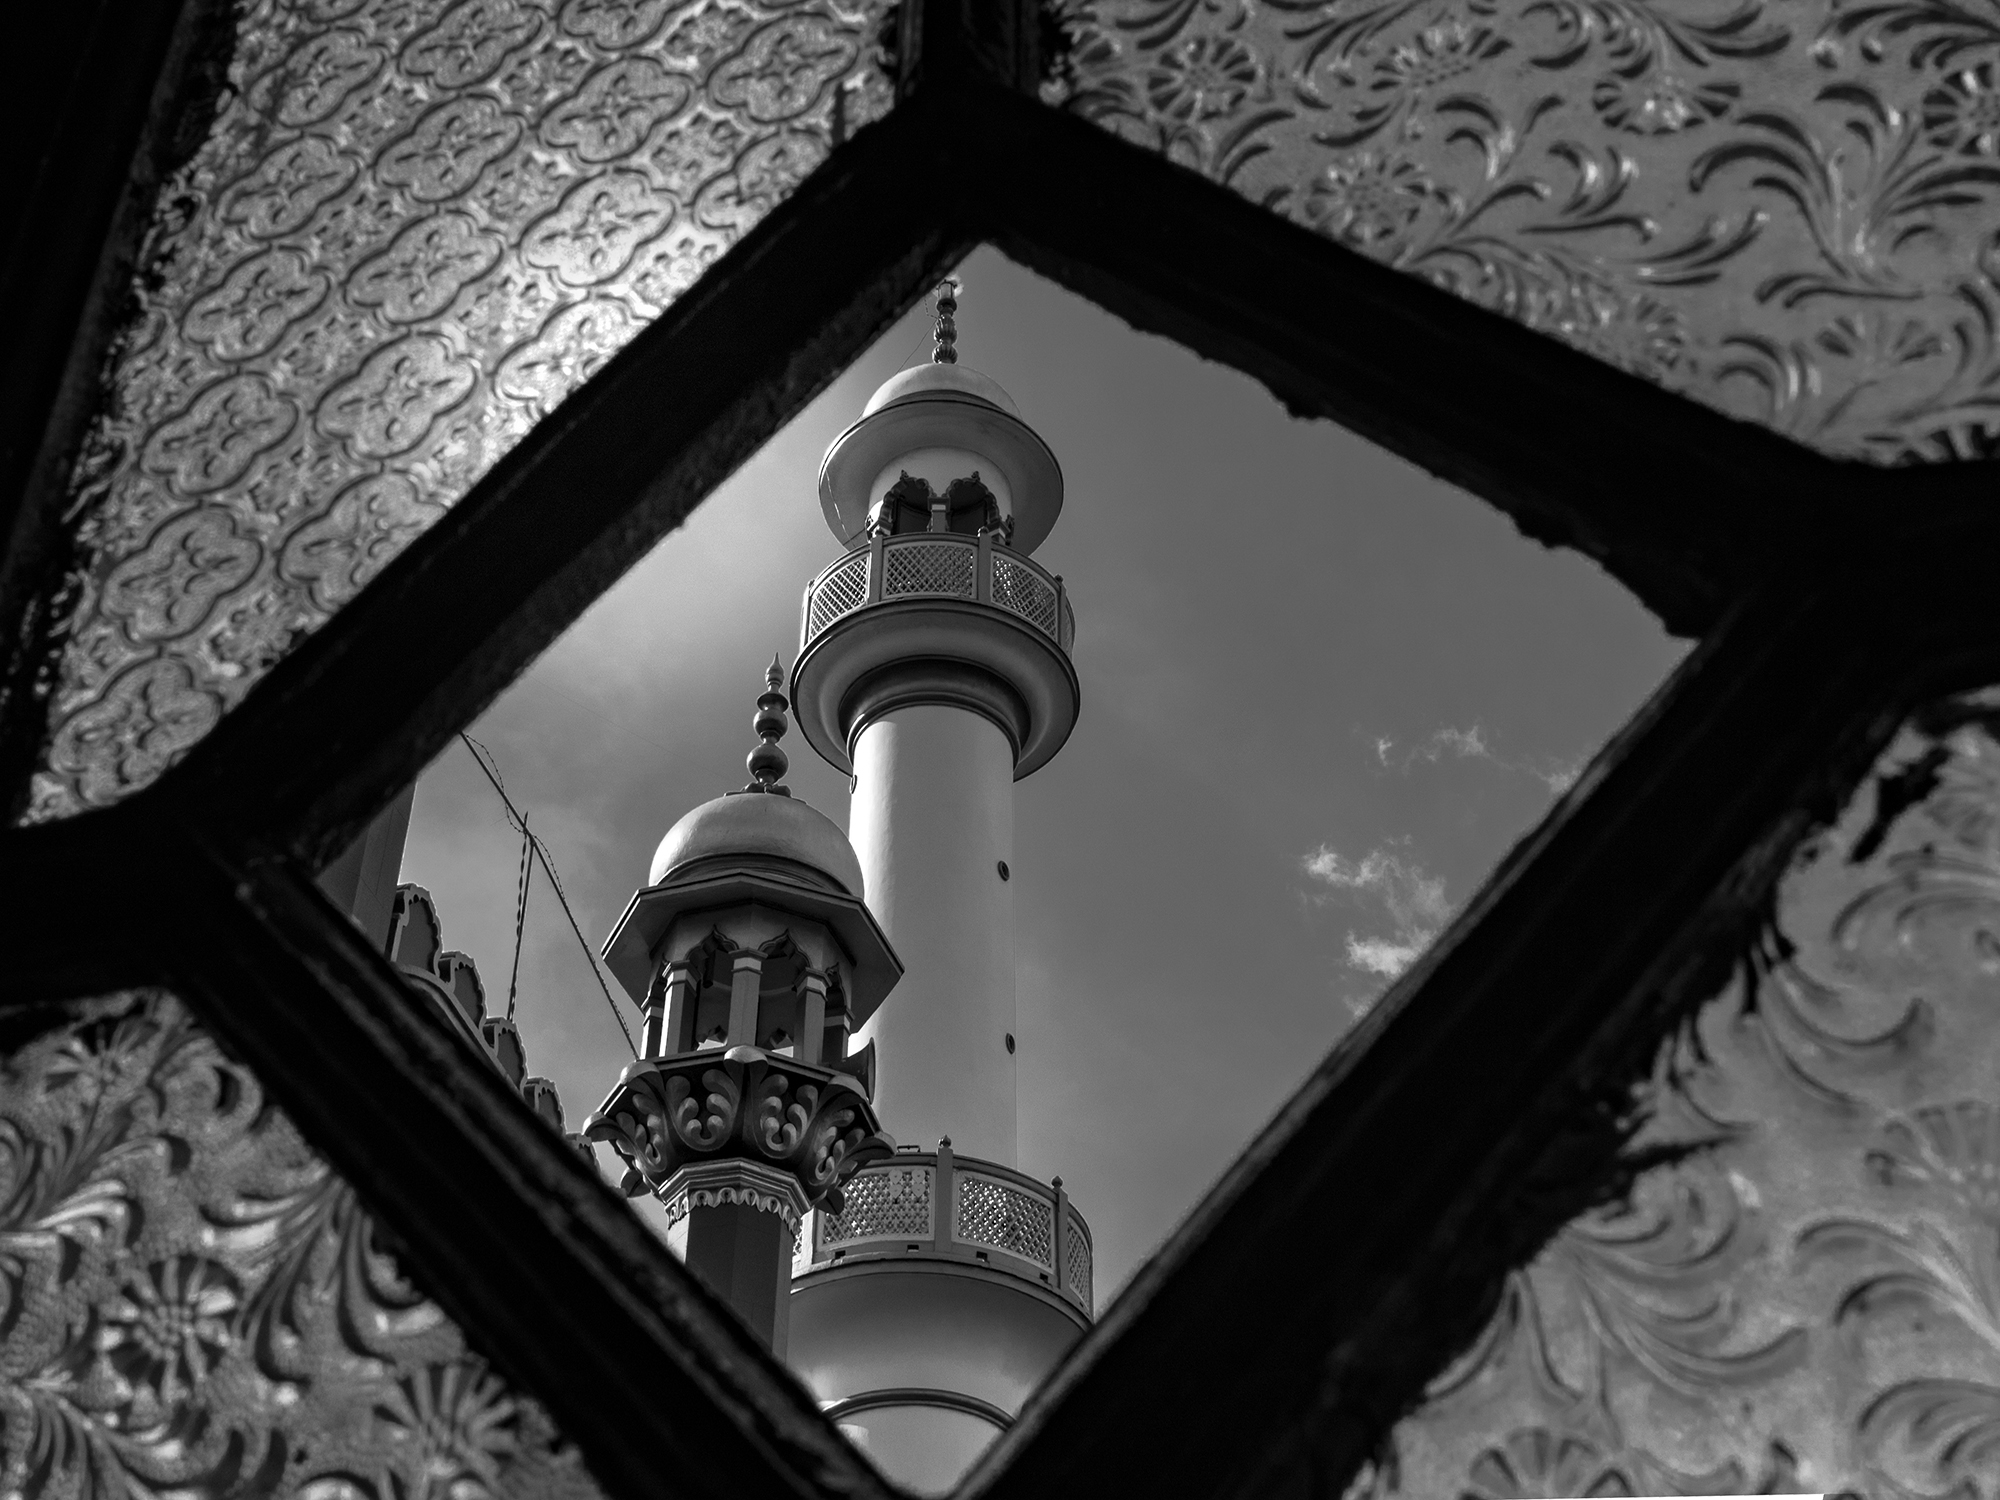 This image was taken through an old window of Nakhoda Mosque which was itself very old and considered heritage.